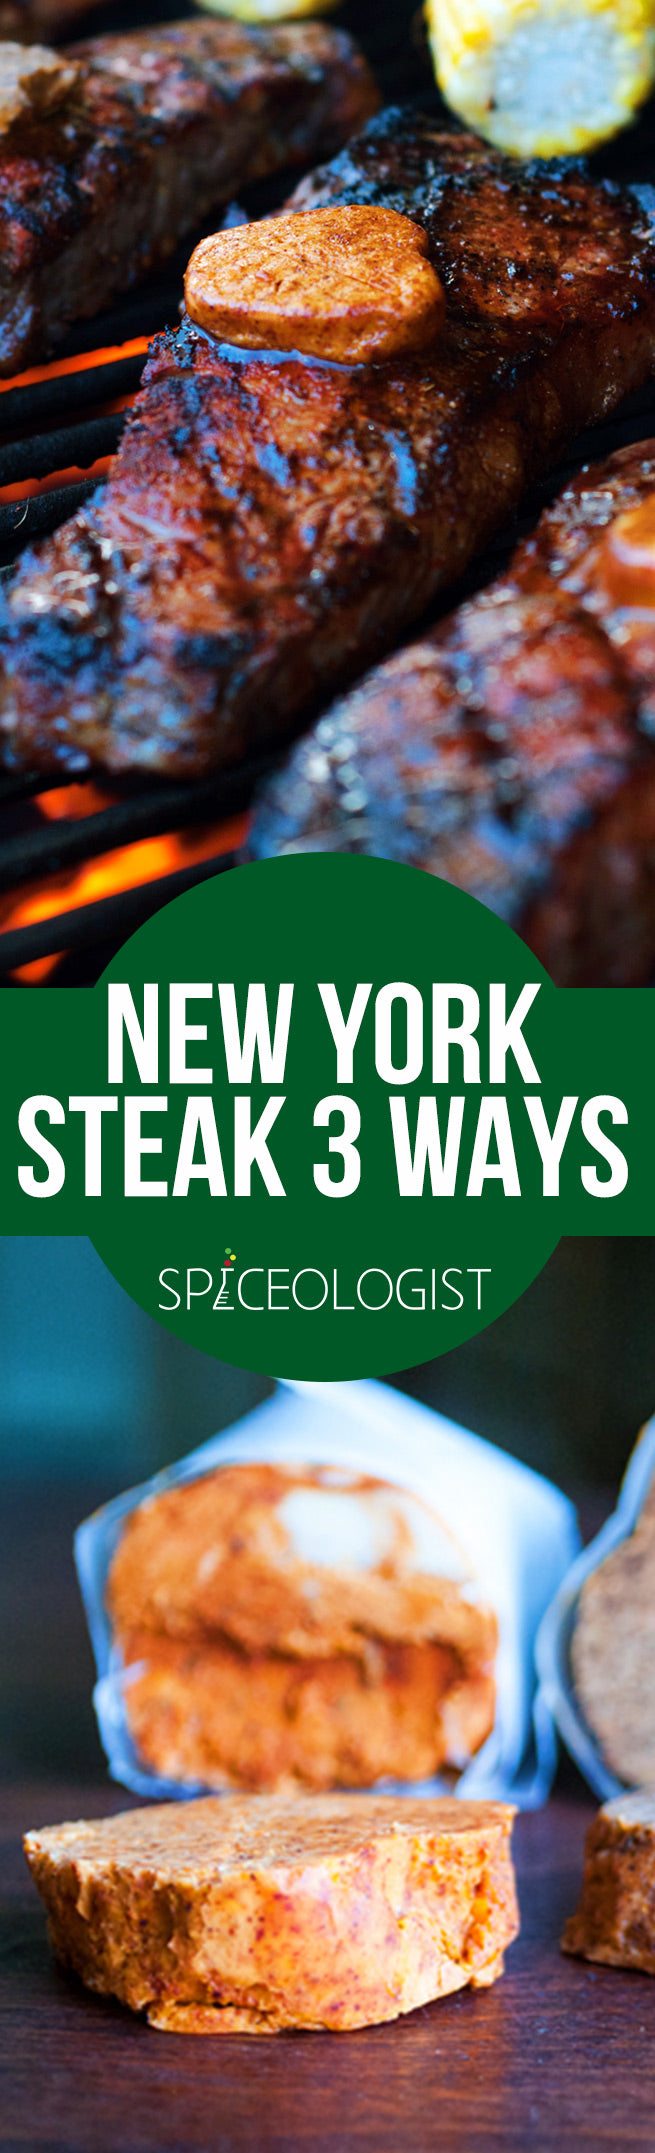 New York Steak - 3 Ways | spiceologist.com